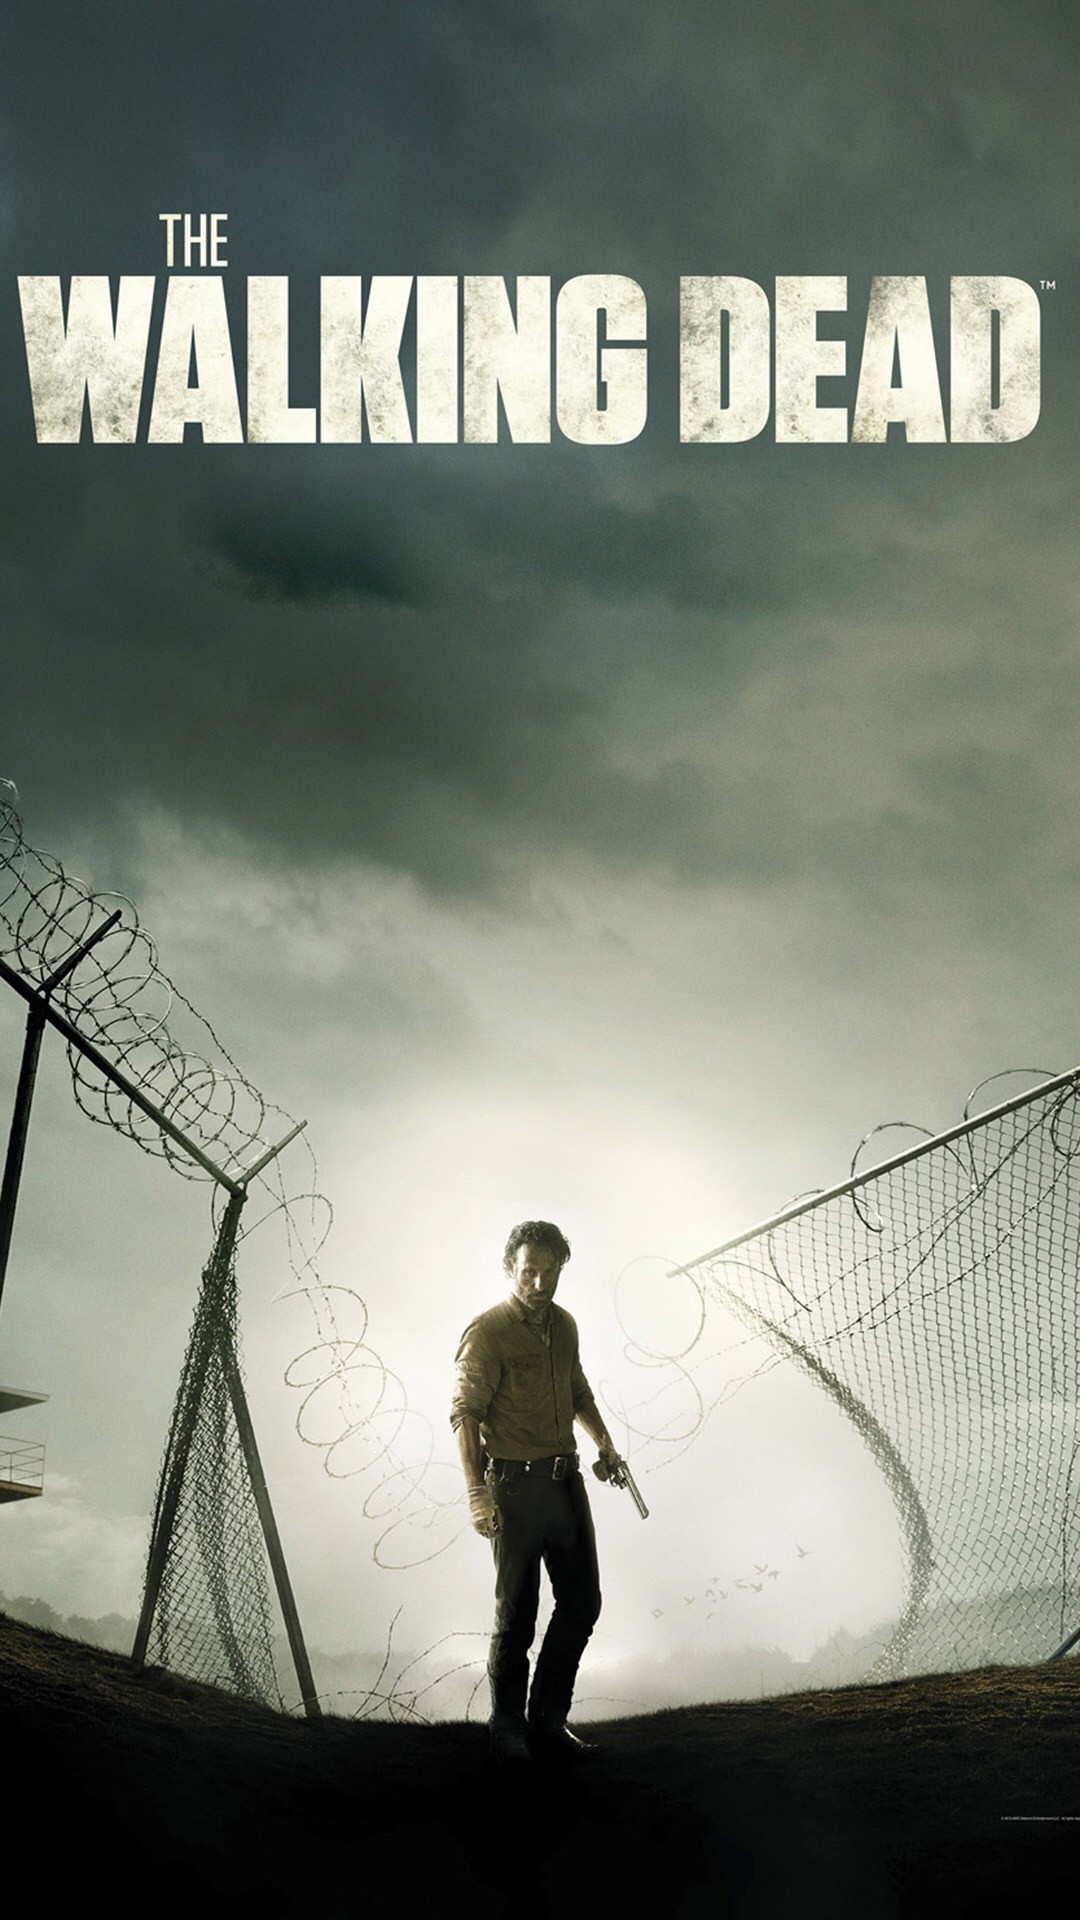 The Walking Dead iPhone wallpaper 5. Download: iPhone. The …